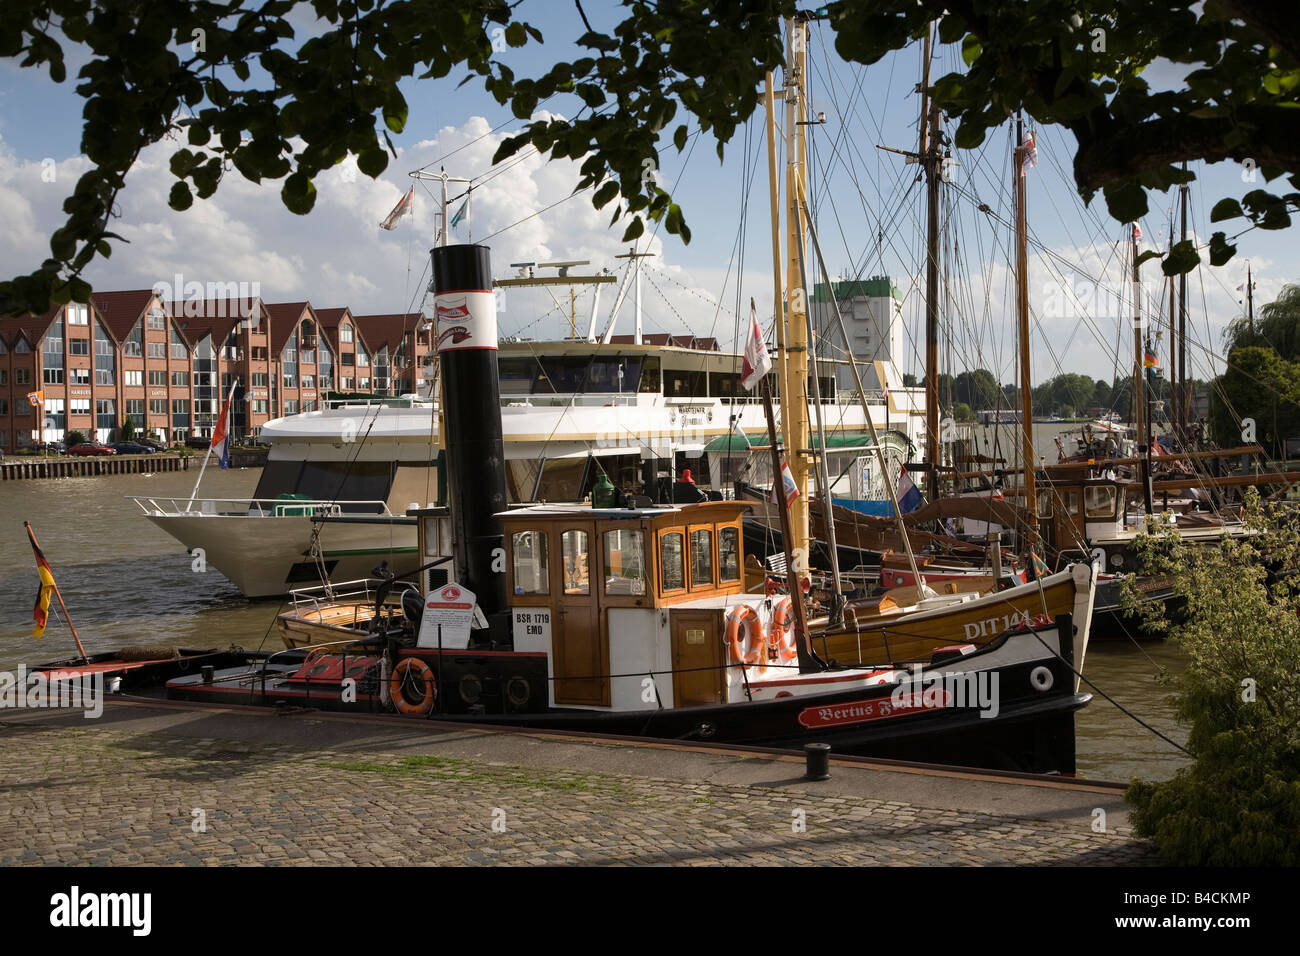 Boats moored on river at Leer Germany - Stock Image